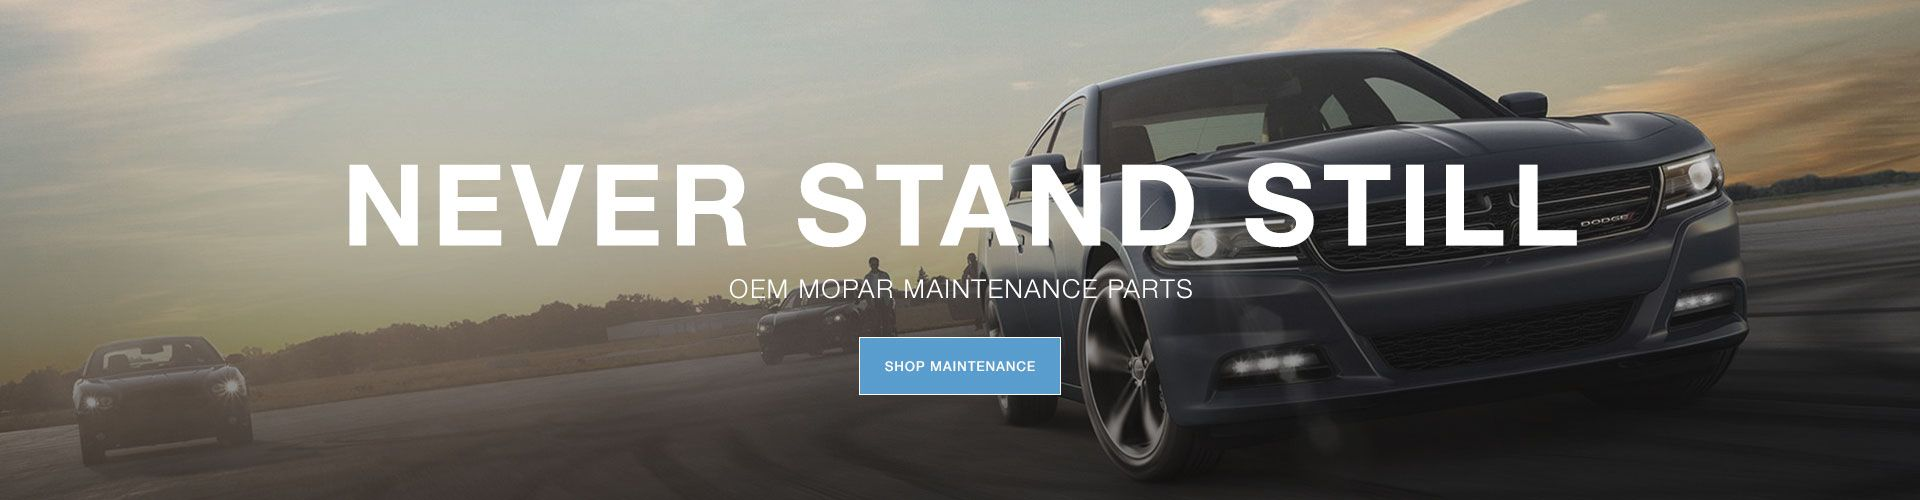 Mopar OEM Maintenance Parts